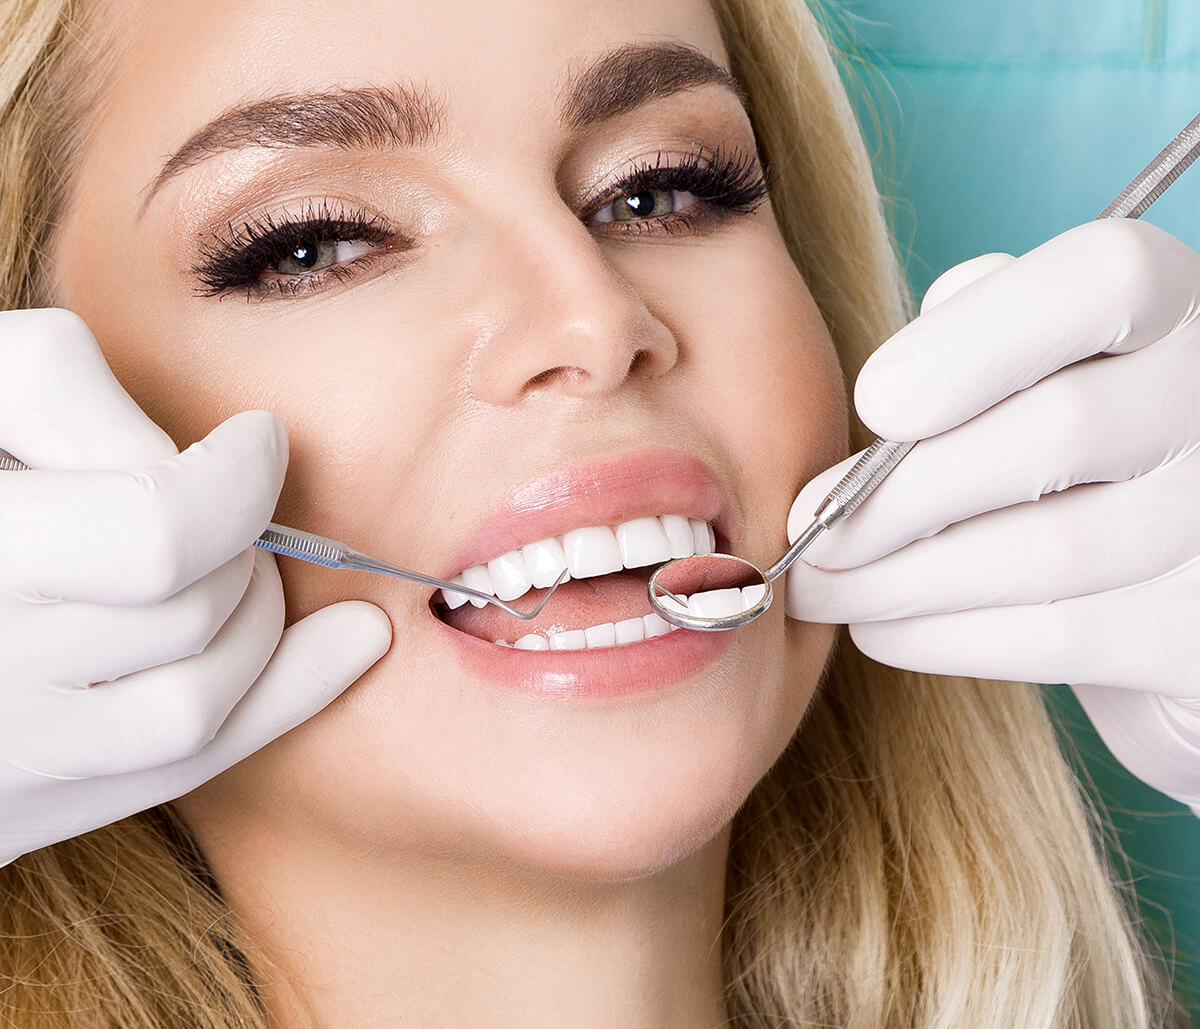 Teeth Filling at Sycamore Dental in Fort Worth TX Area